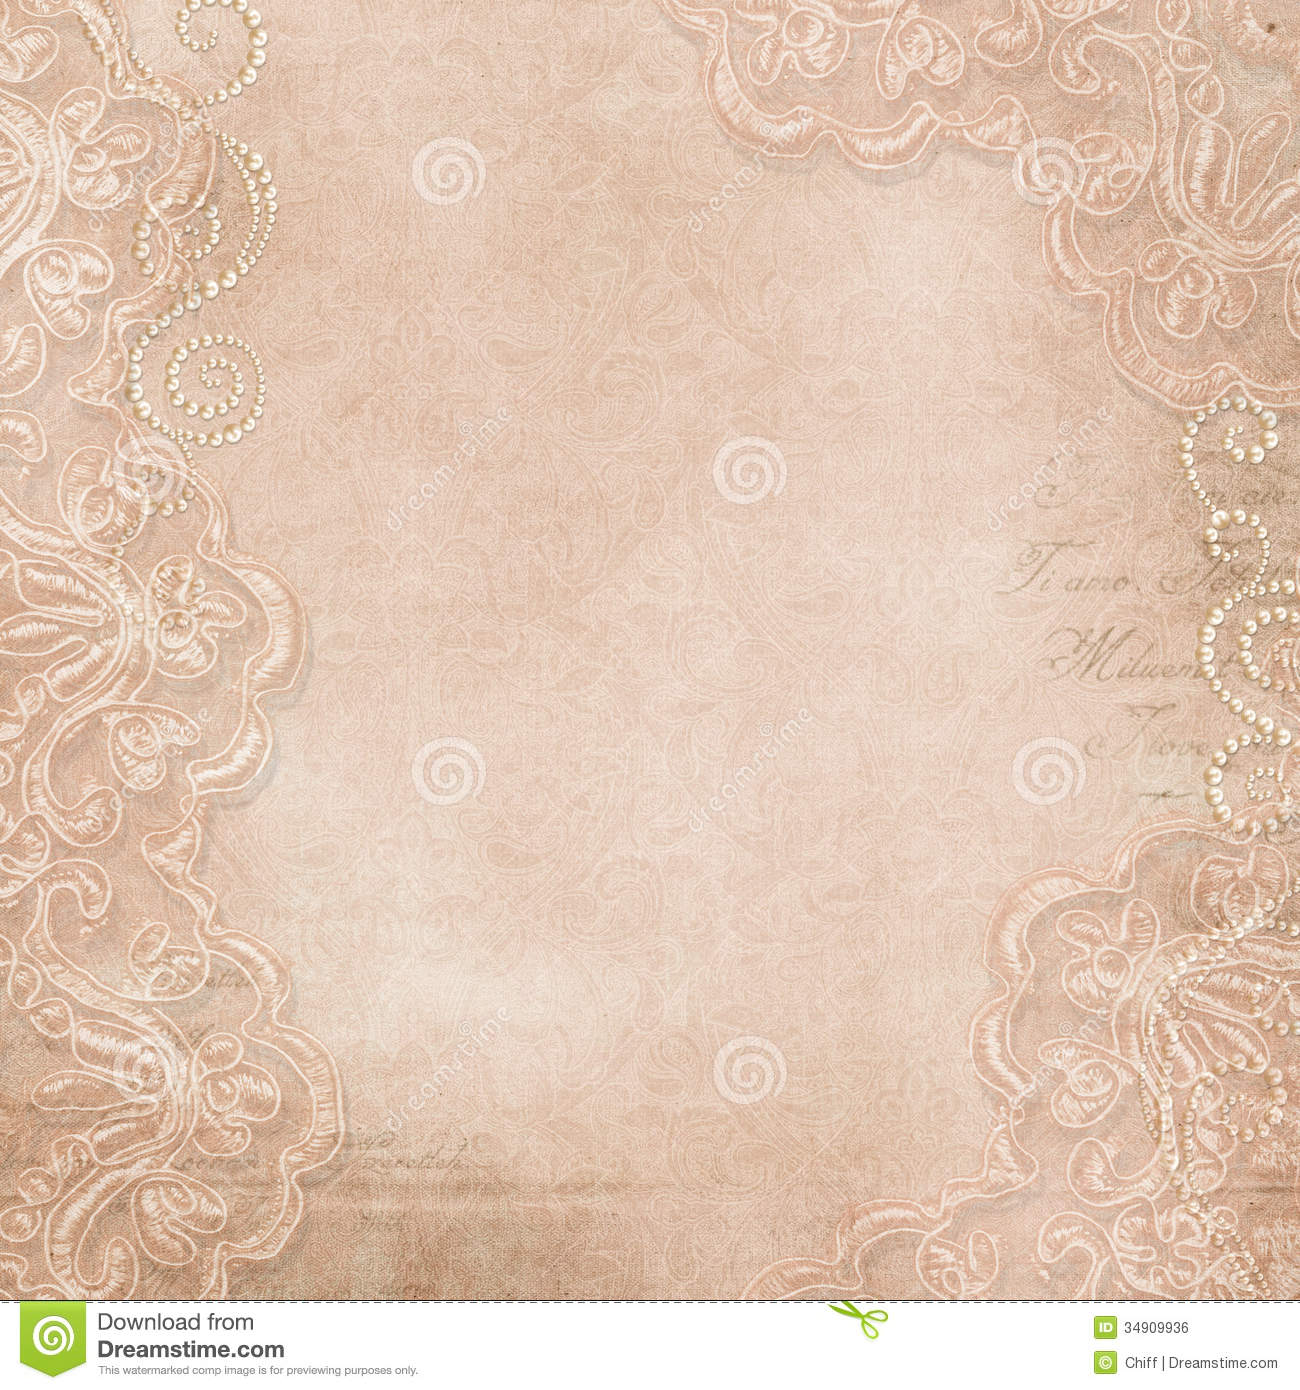 map wedding invitations with Royalty Free Stock Image Vintage Gorgeous Background Lace Pearls Perl Happy Valentine S Day Card Image34909936 on C5b751038d5bb87c likewise Royalty Free Stock Image Gift Box Invitation Card Frame Birthday Tag Border Polka Dot Image36387056 in addition Royalty Free Stock Image Vintage Gorgeous Background Lace Pearls Perl Happy Valentine S Day Card Image34909936 in addition Wedding Invitation in addition Stock Illustration Watercolor Flowers Bird Cage Happy Birthday Design Wedding Invitation Design Save Date Illustration Valentine S Image53831743.